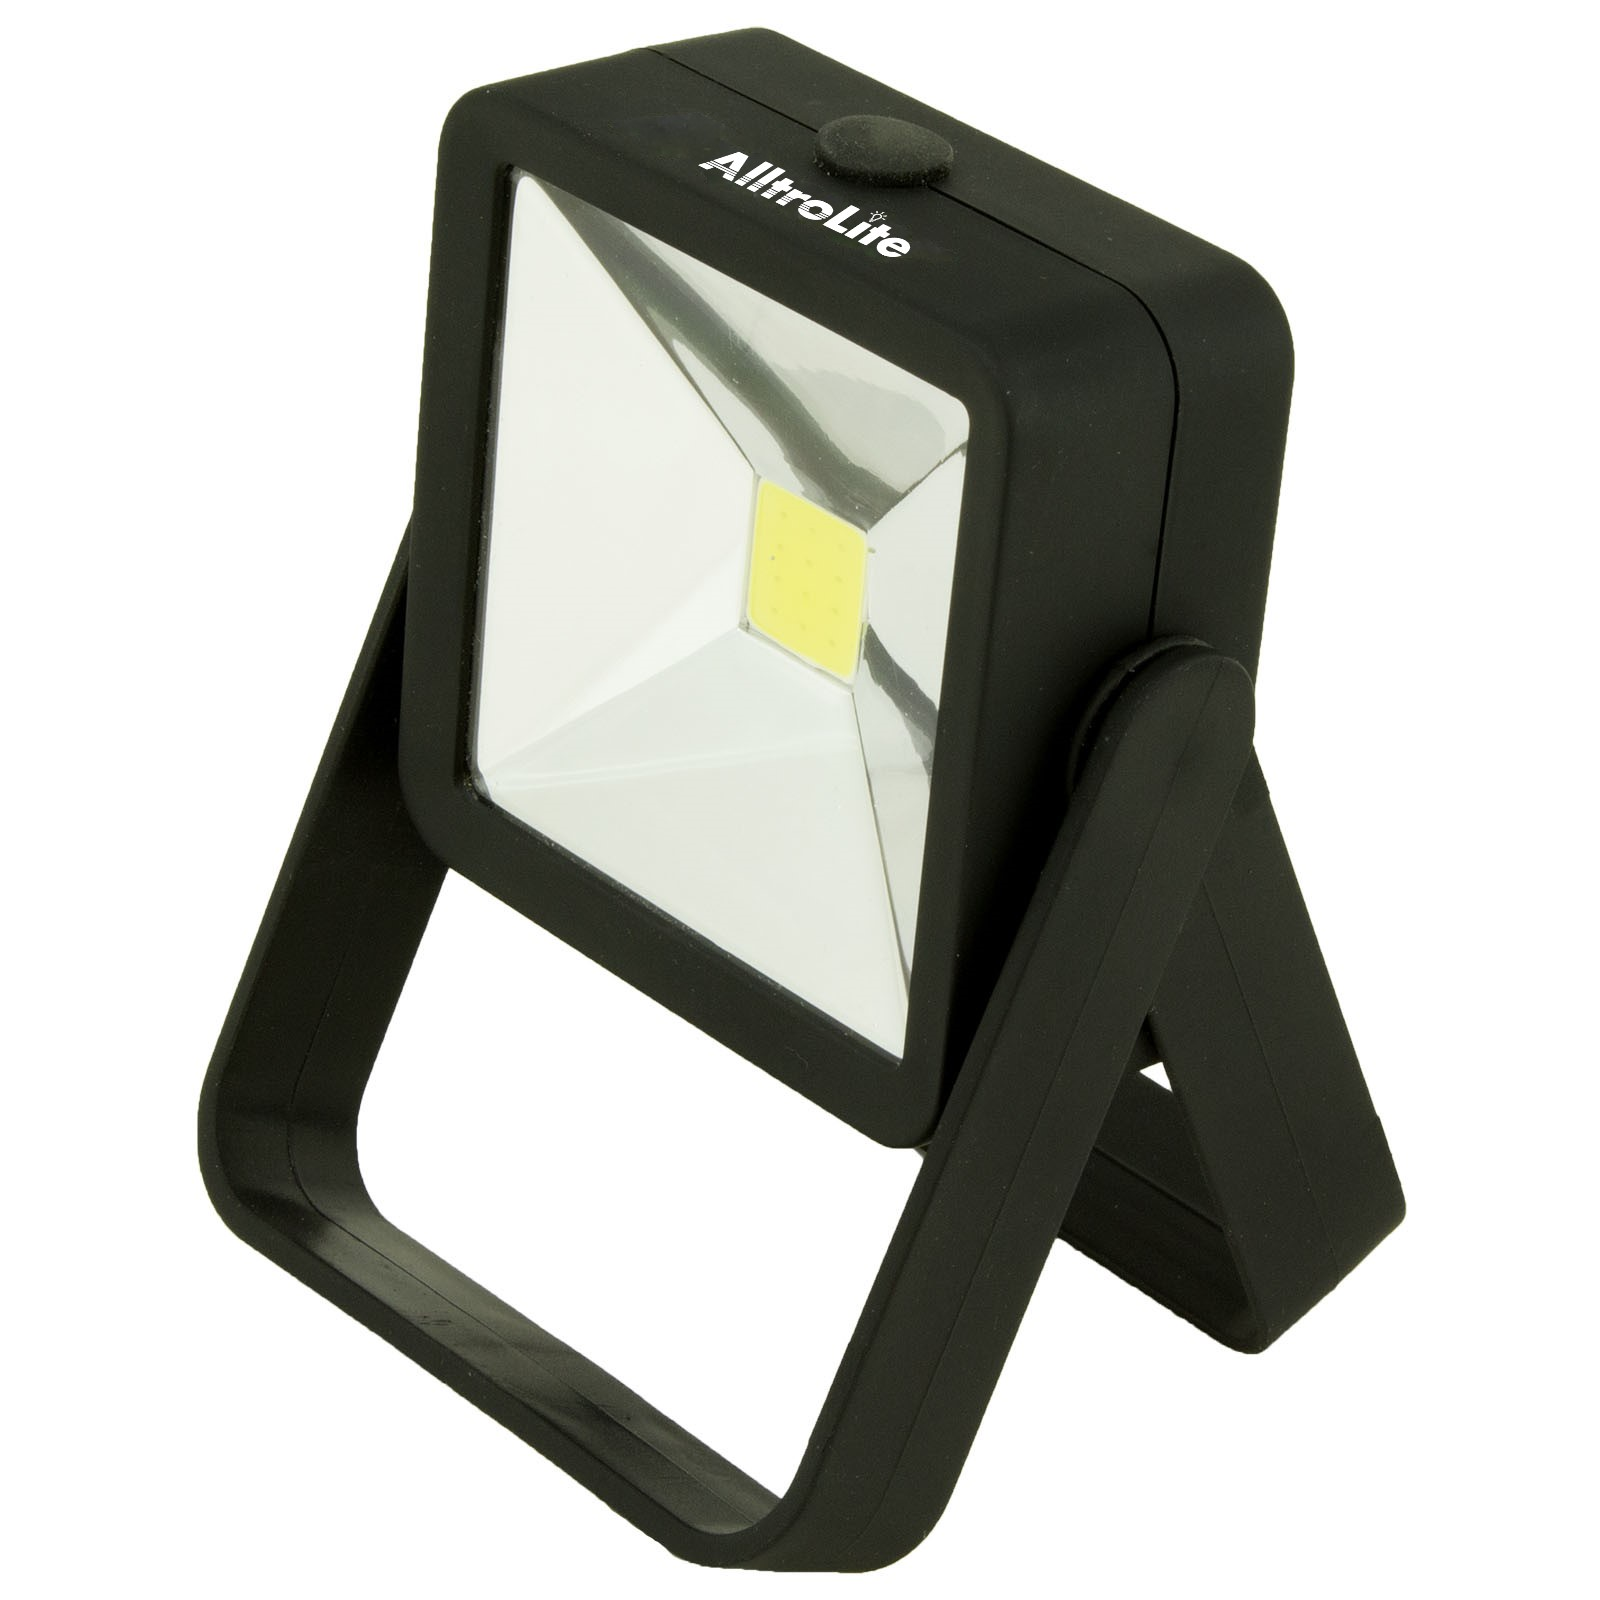 200 Lumens LED Work Light (STANCE)